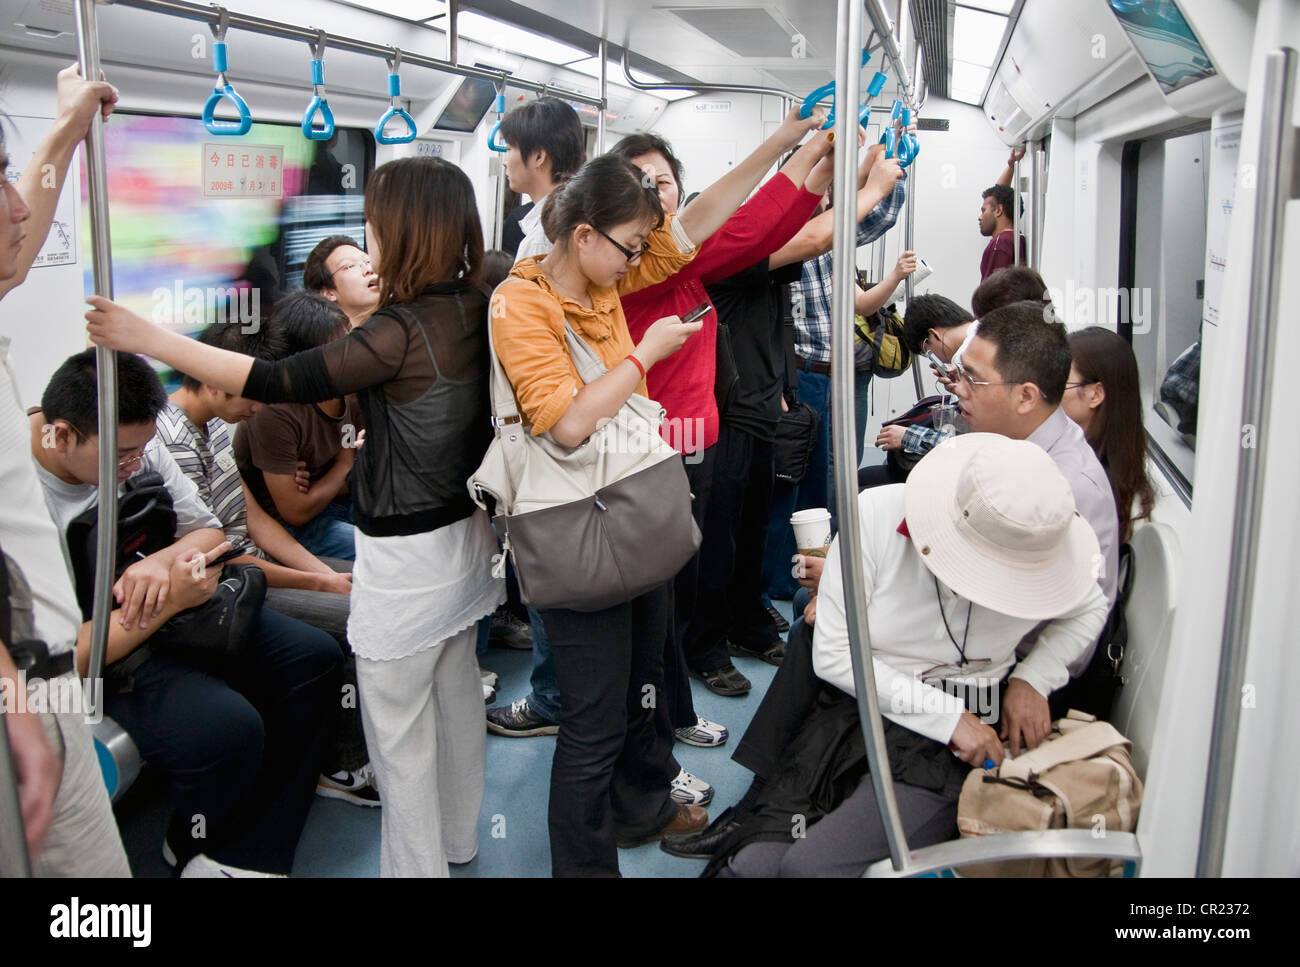 China: Beijing Subway passengers - Stock Image